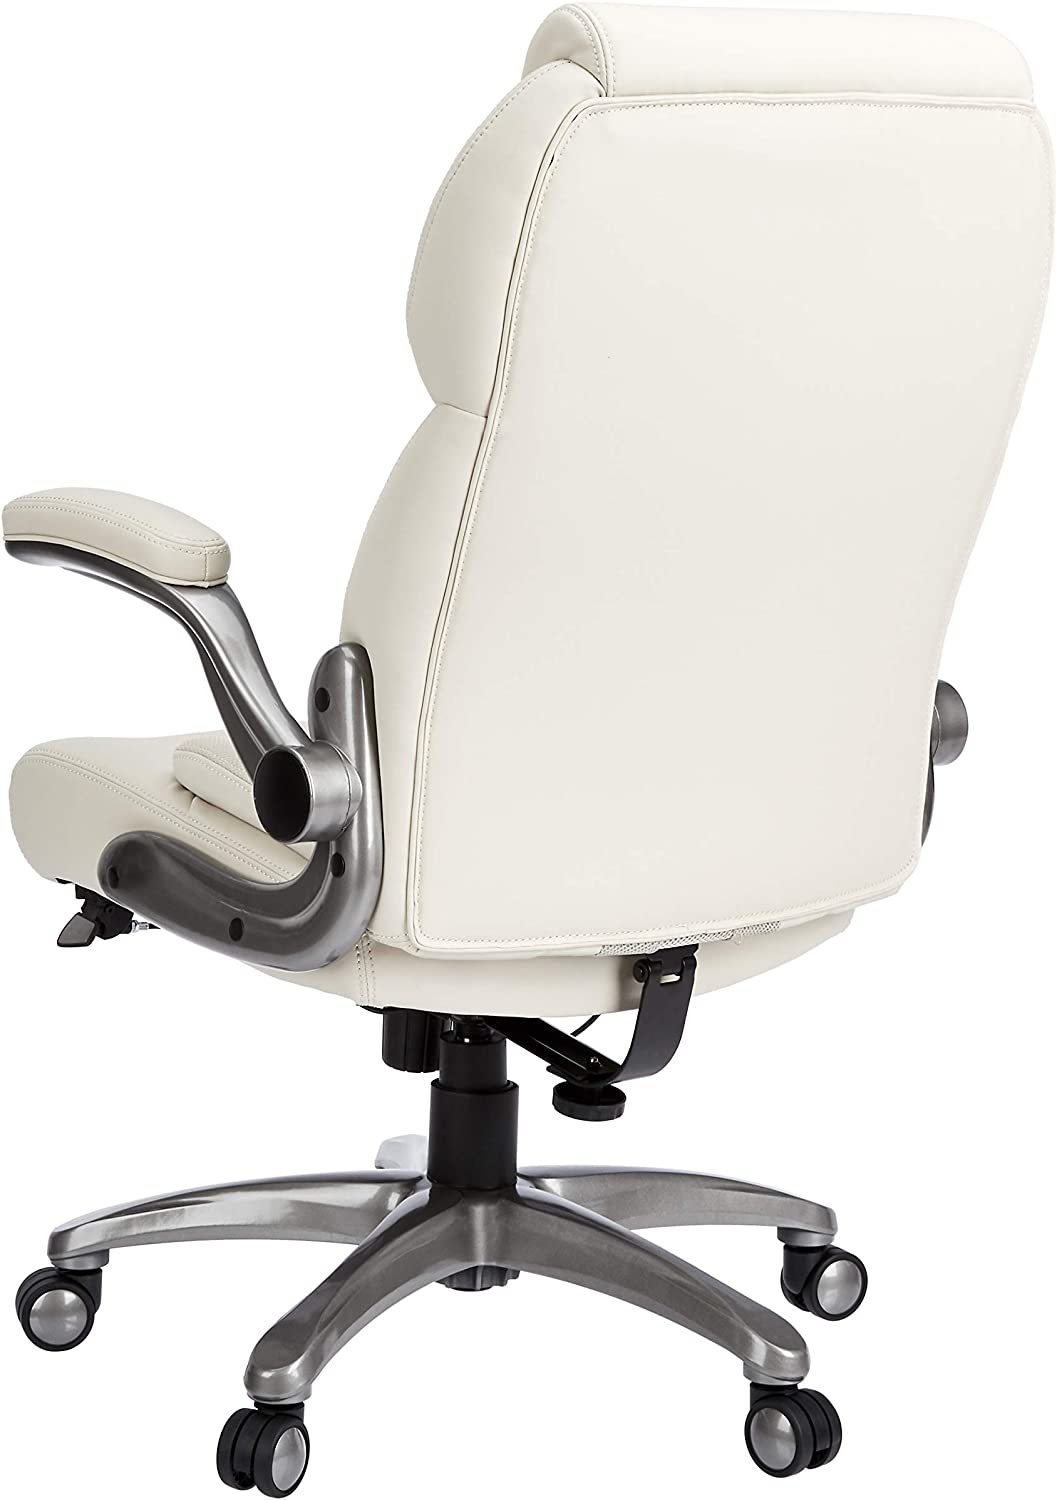 Basics Extra Comfort High-Back Leather Executive Chair with Flip-Up Arms and Lumbar Support